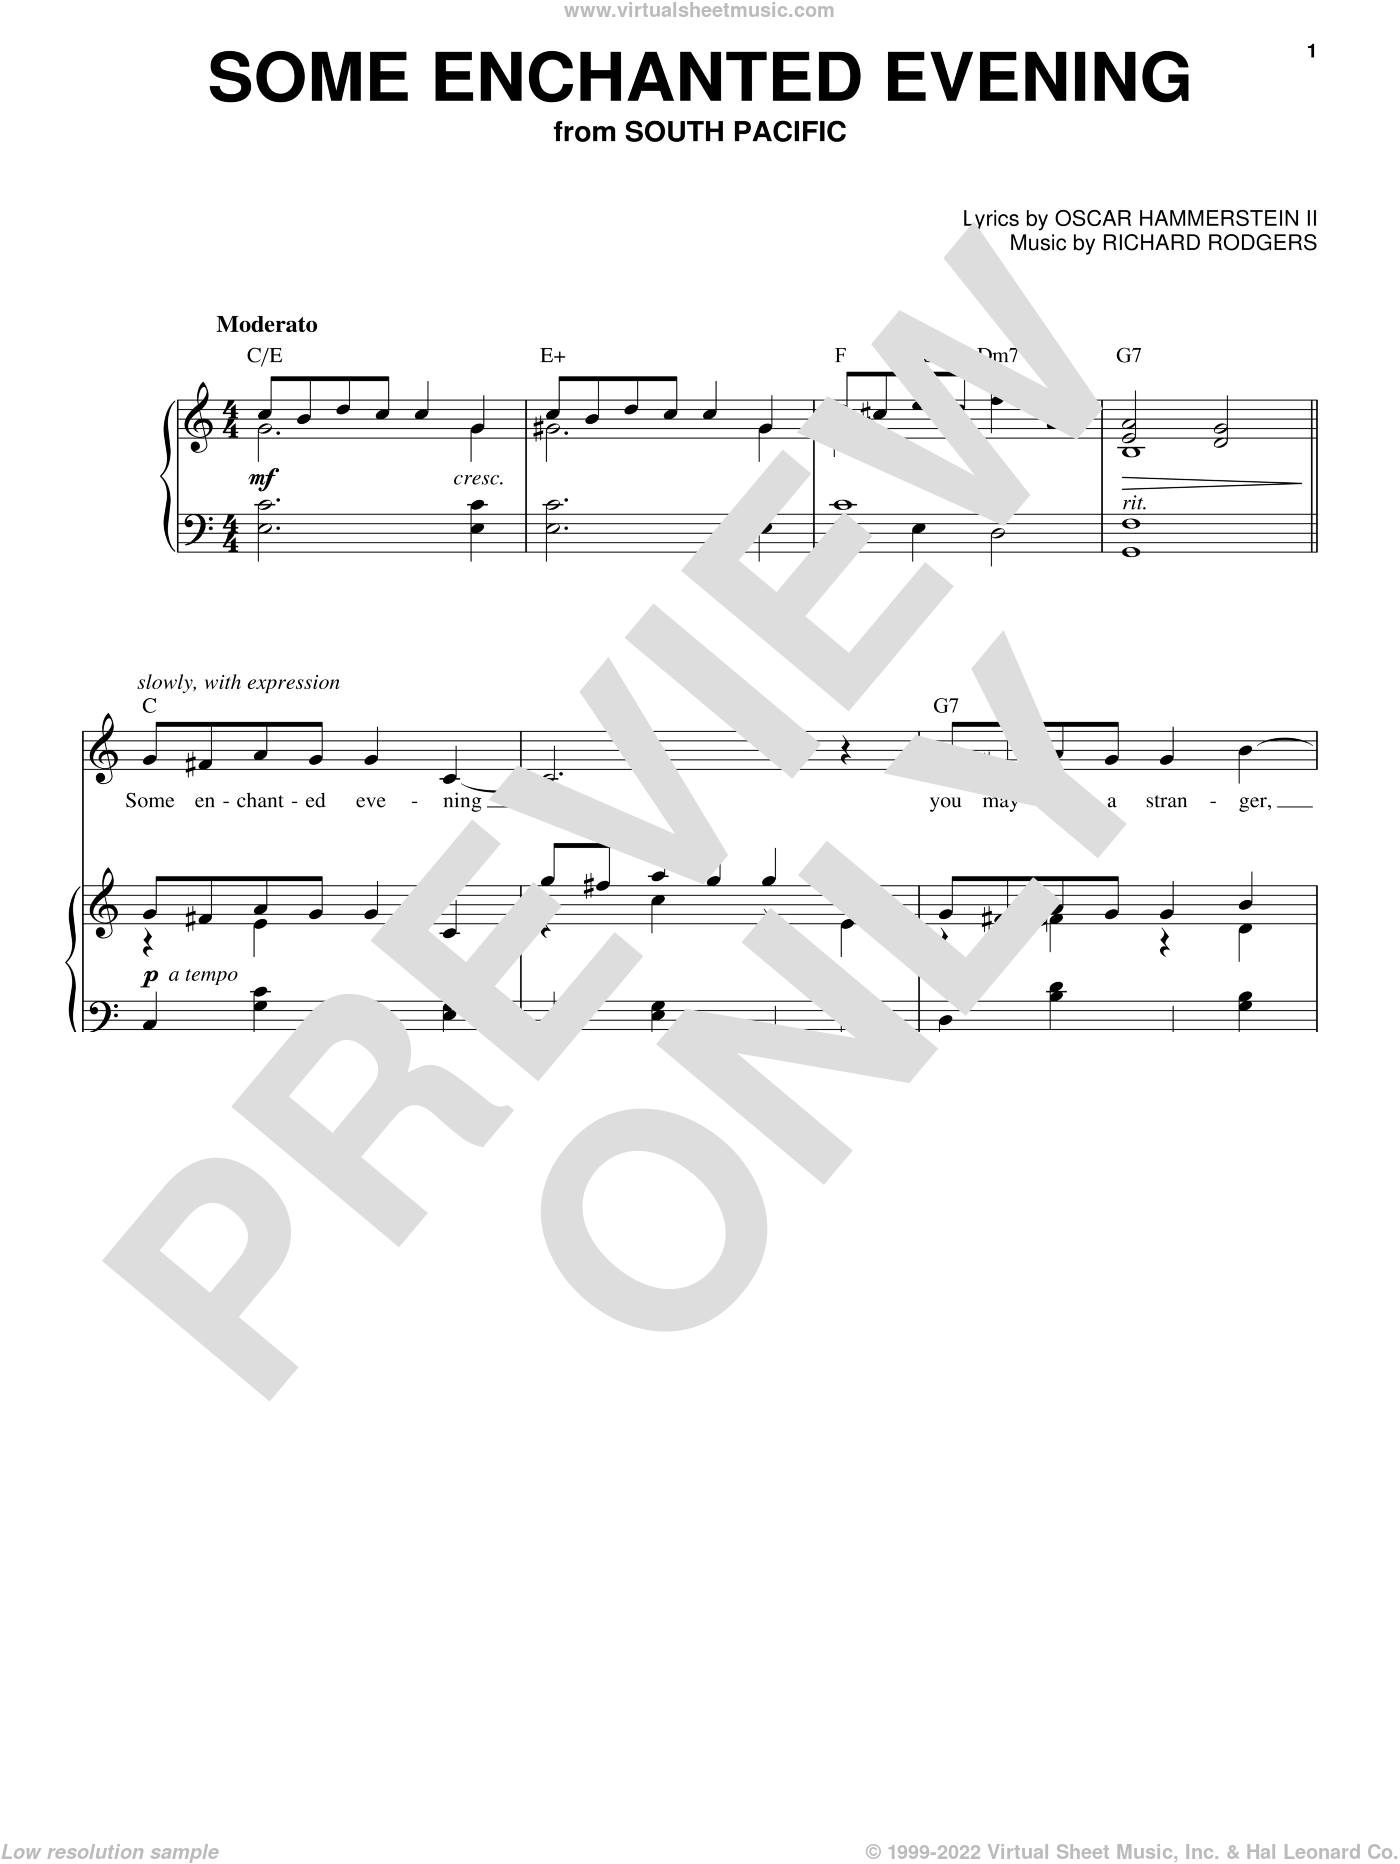 Some Enchanted Evening sheet music for voice and piano (High Voice) by Rodgers & Hammerstein, Oscar II Hammerstein and Richard Rodgers, intermediate skill level